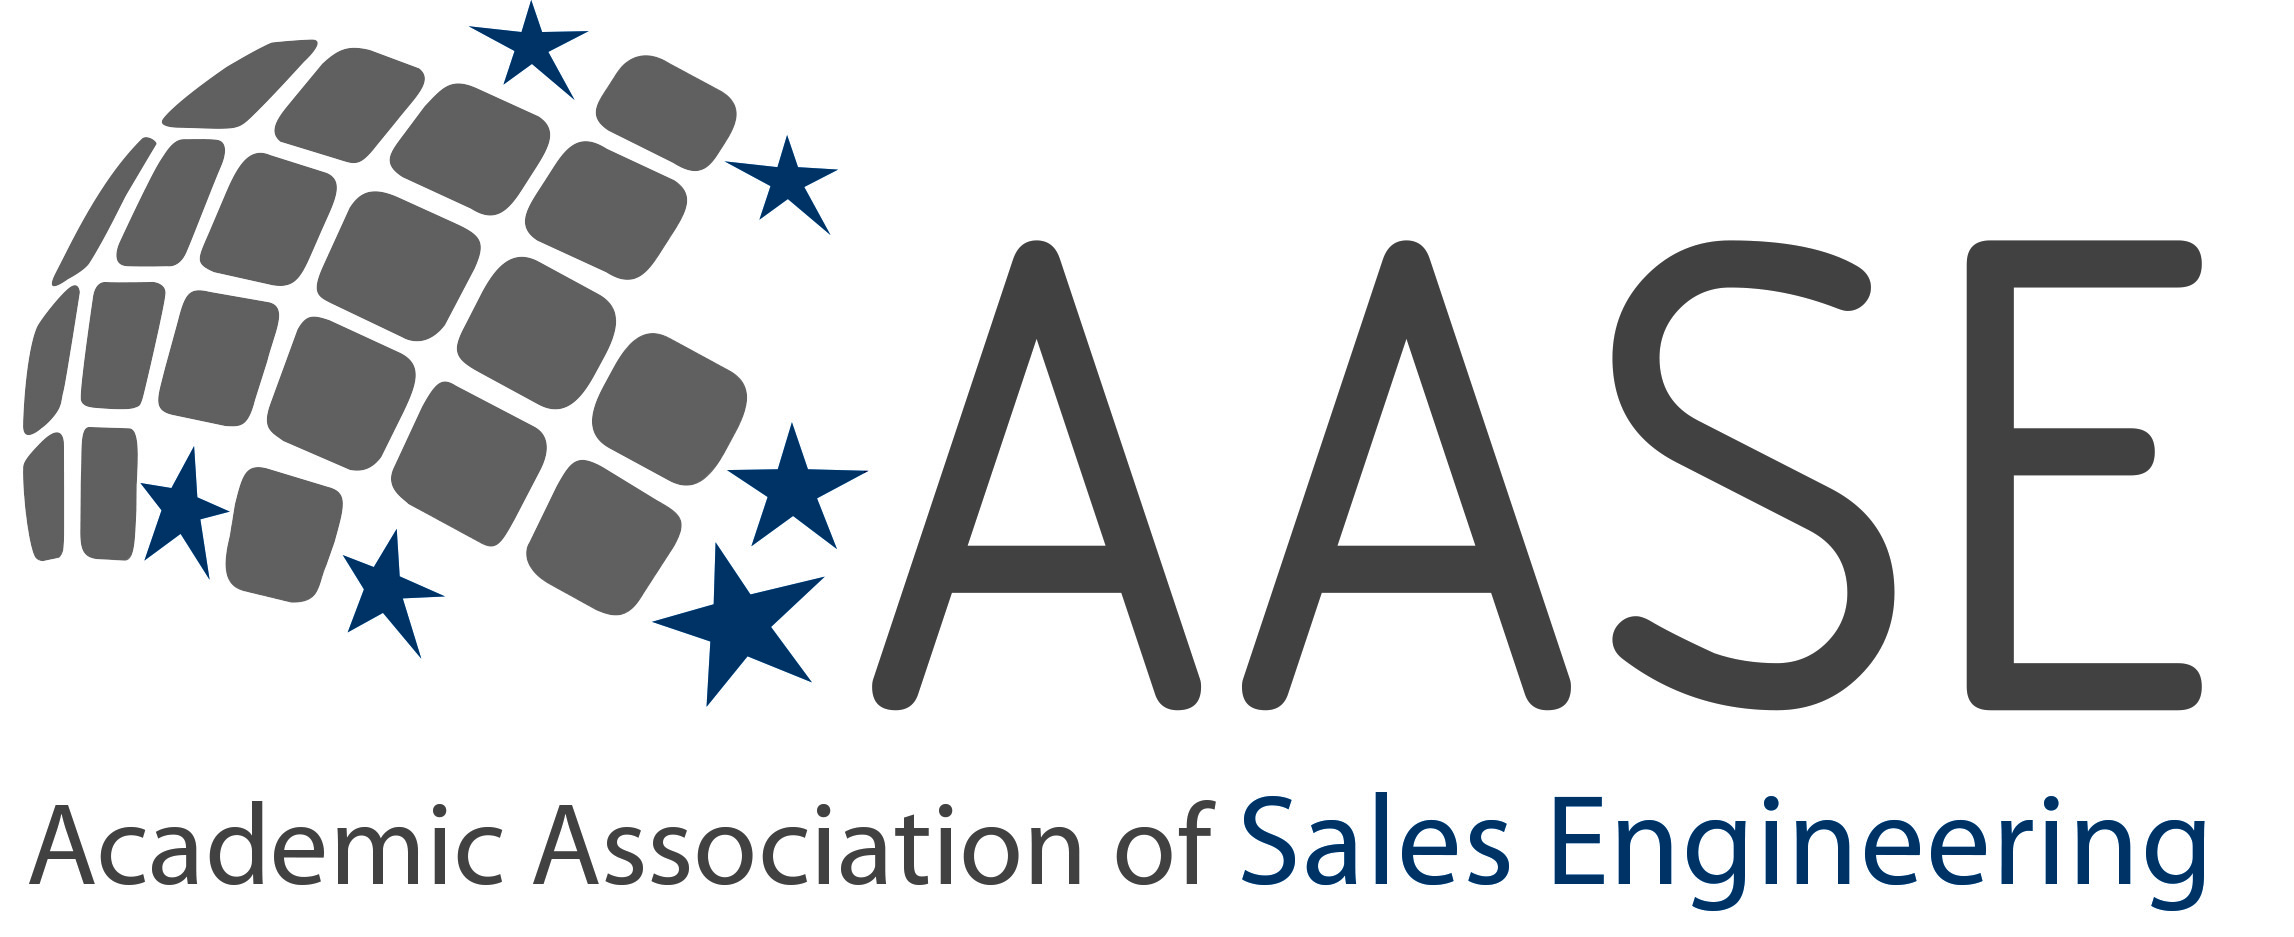 Logo Academic Association of Sales Engineering